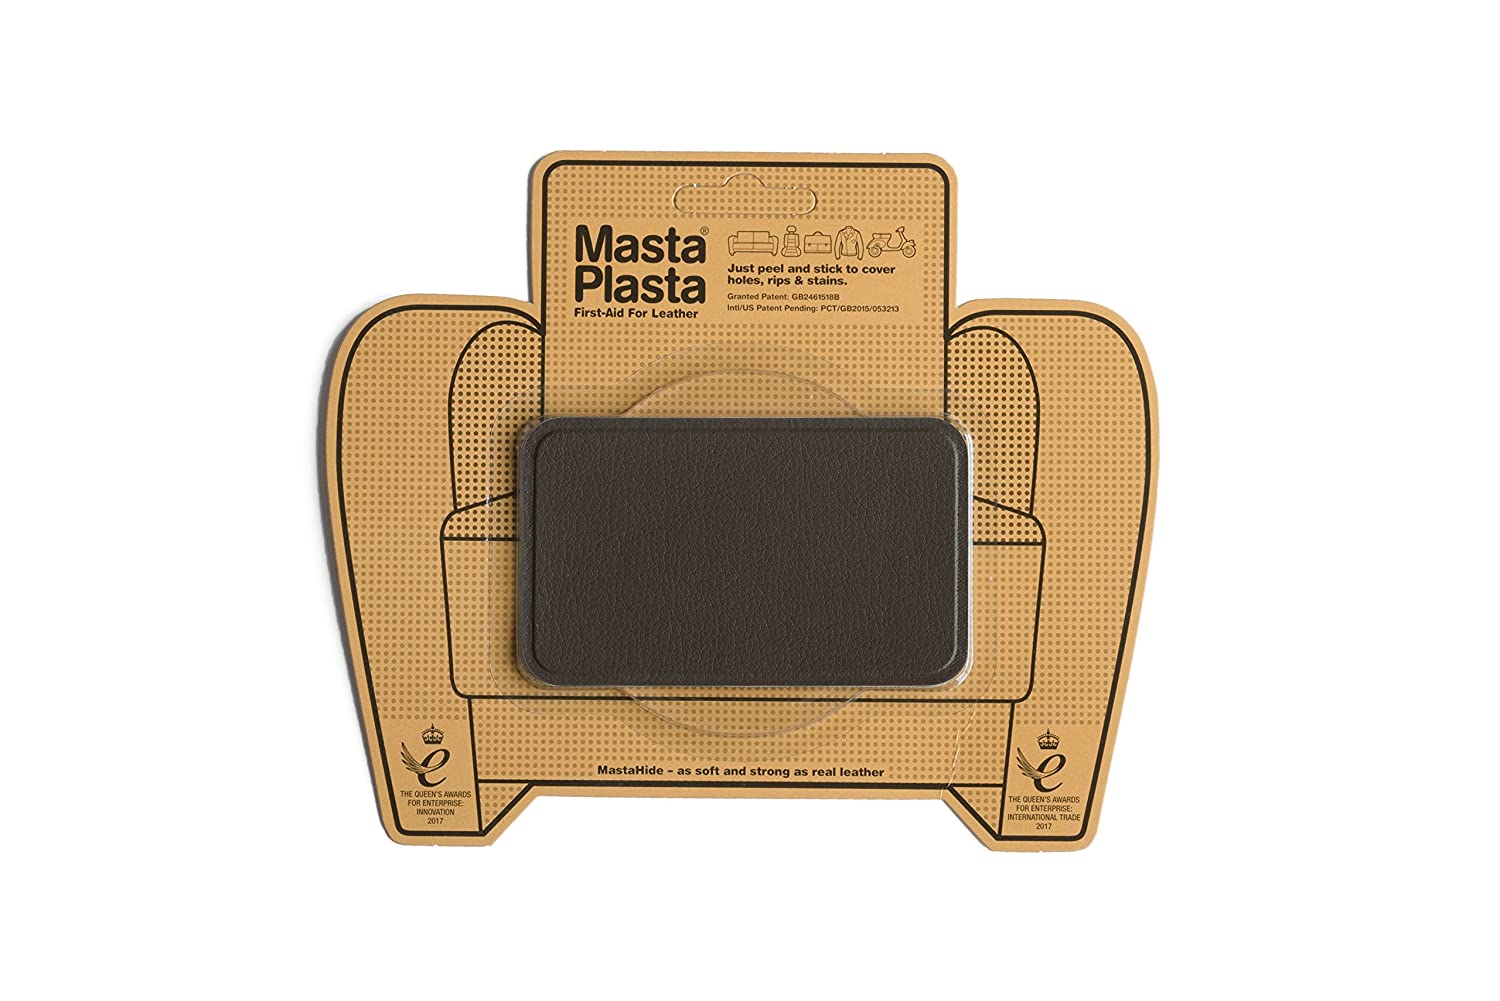 MastaPlasta Peel and Stick First-Aid Leather Repair Band-Aid for Furniture, Medium Plain, 4-Inch by 2.4-Inch, Dark Brown Mastaplasta Limited BROWNMED4X2.4STITCHUSA